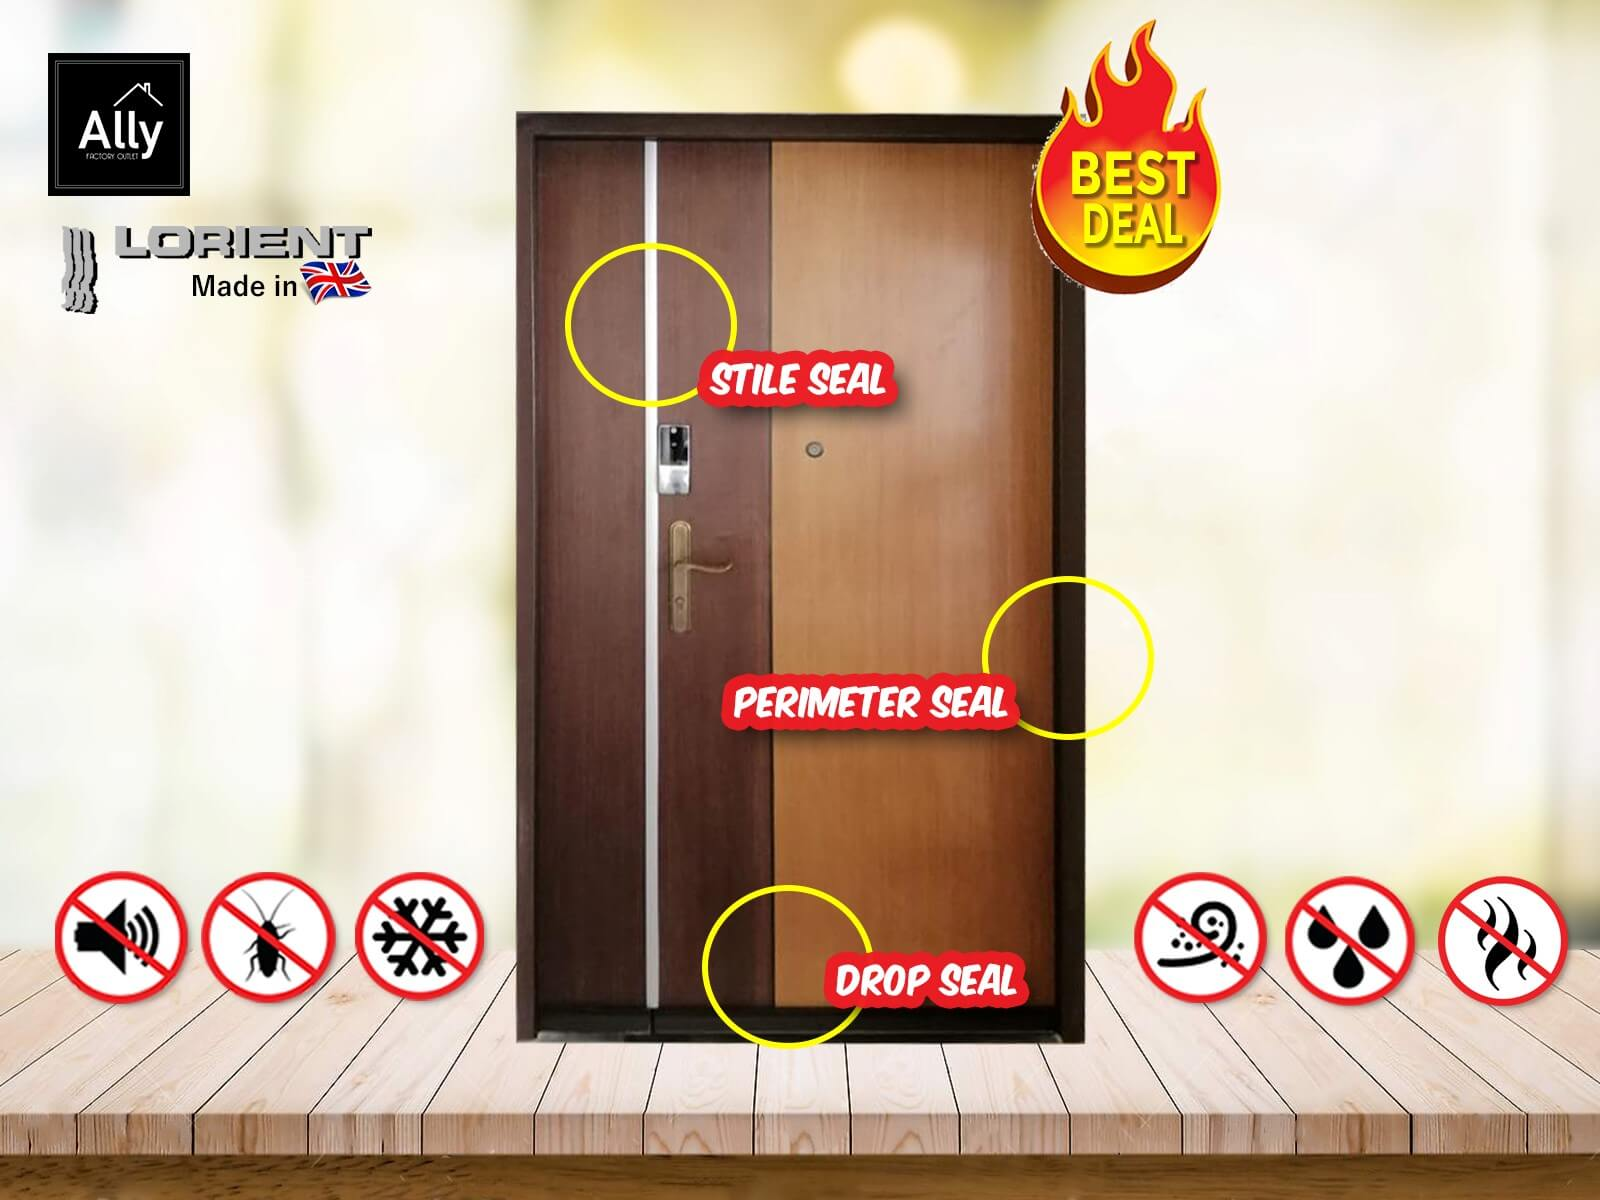 Ally Factory Outlet - Door Seal and Door Promotion 20191016 - 01